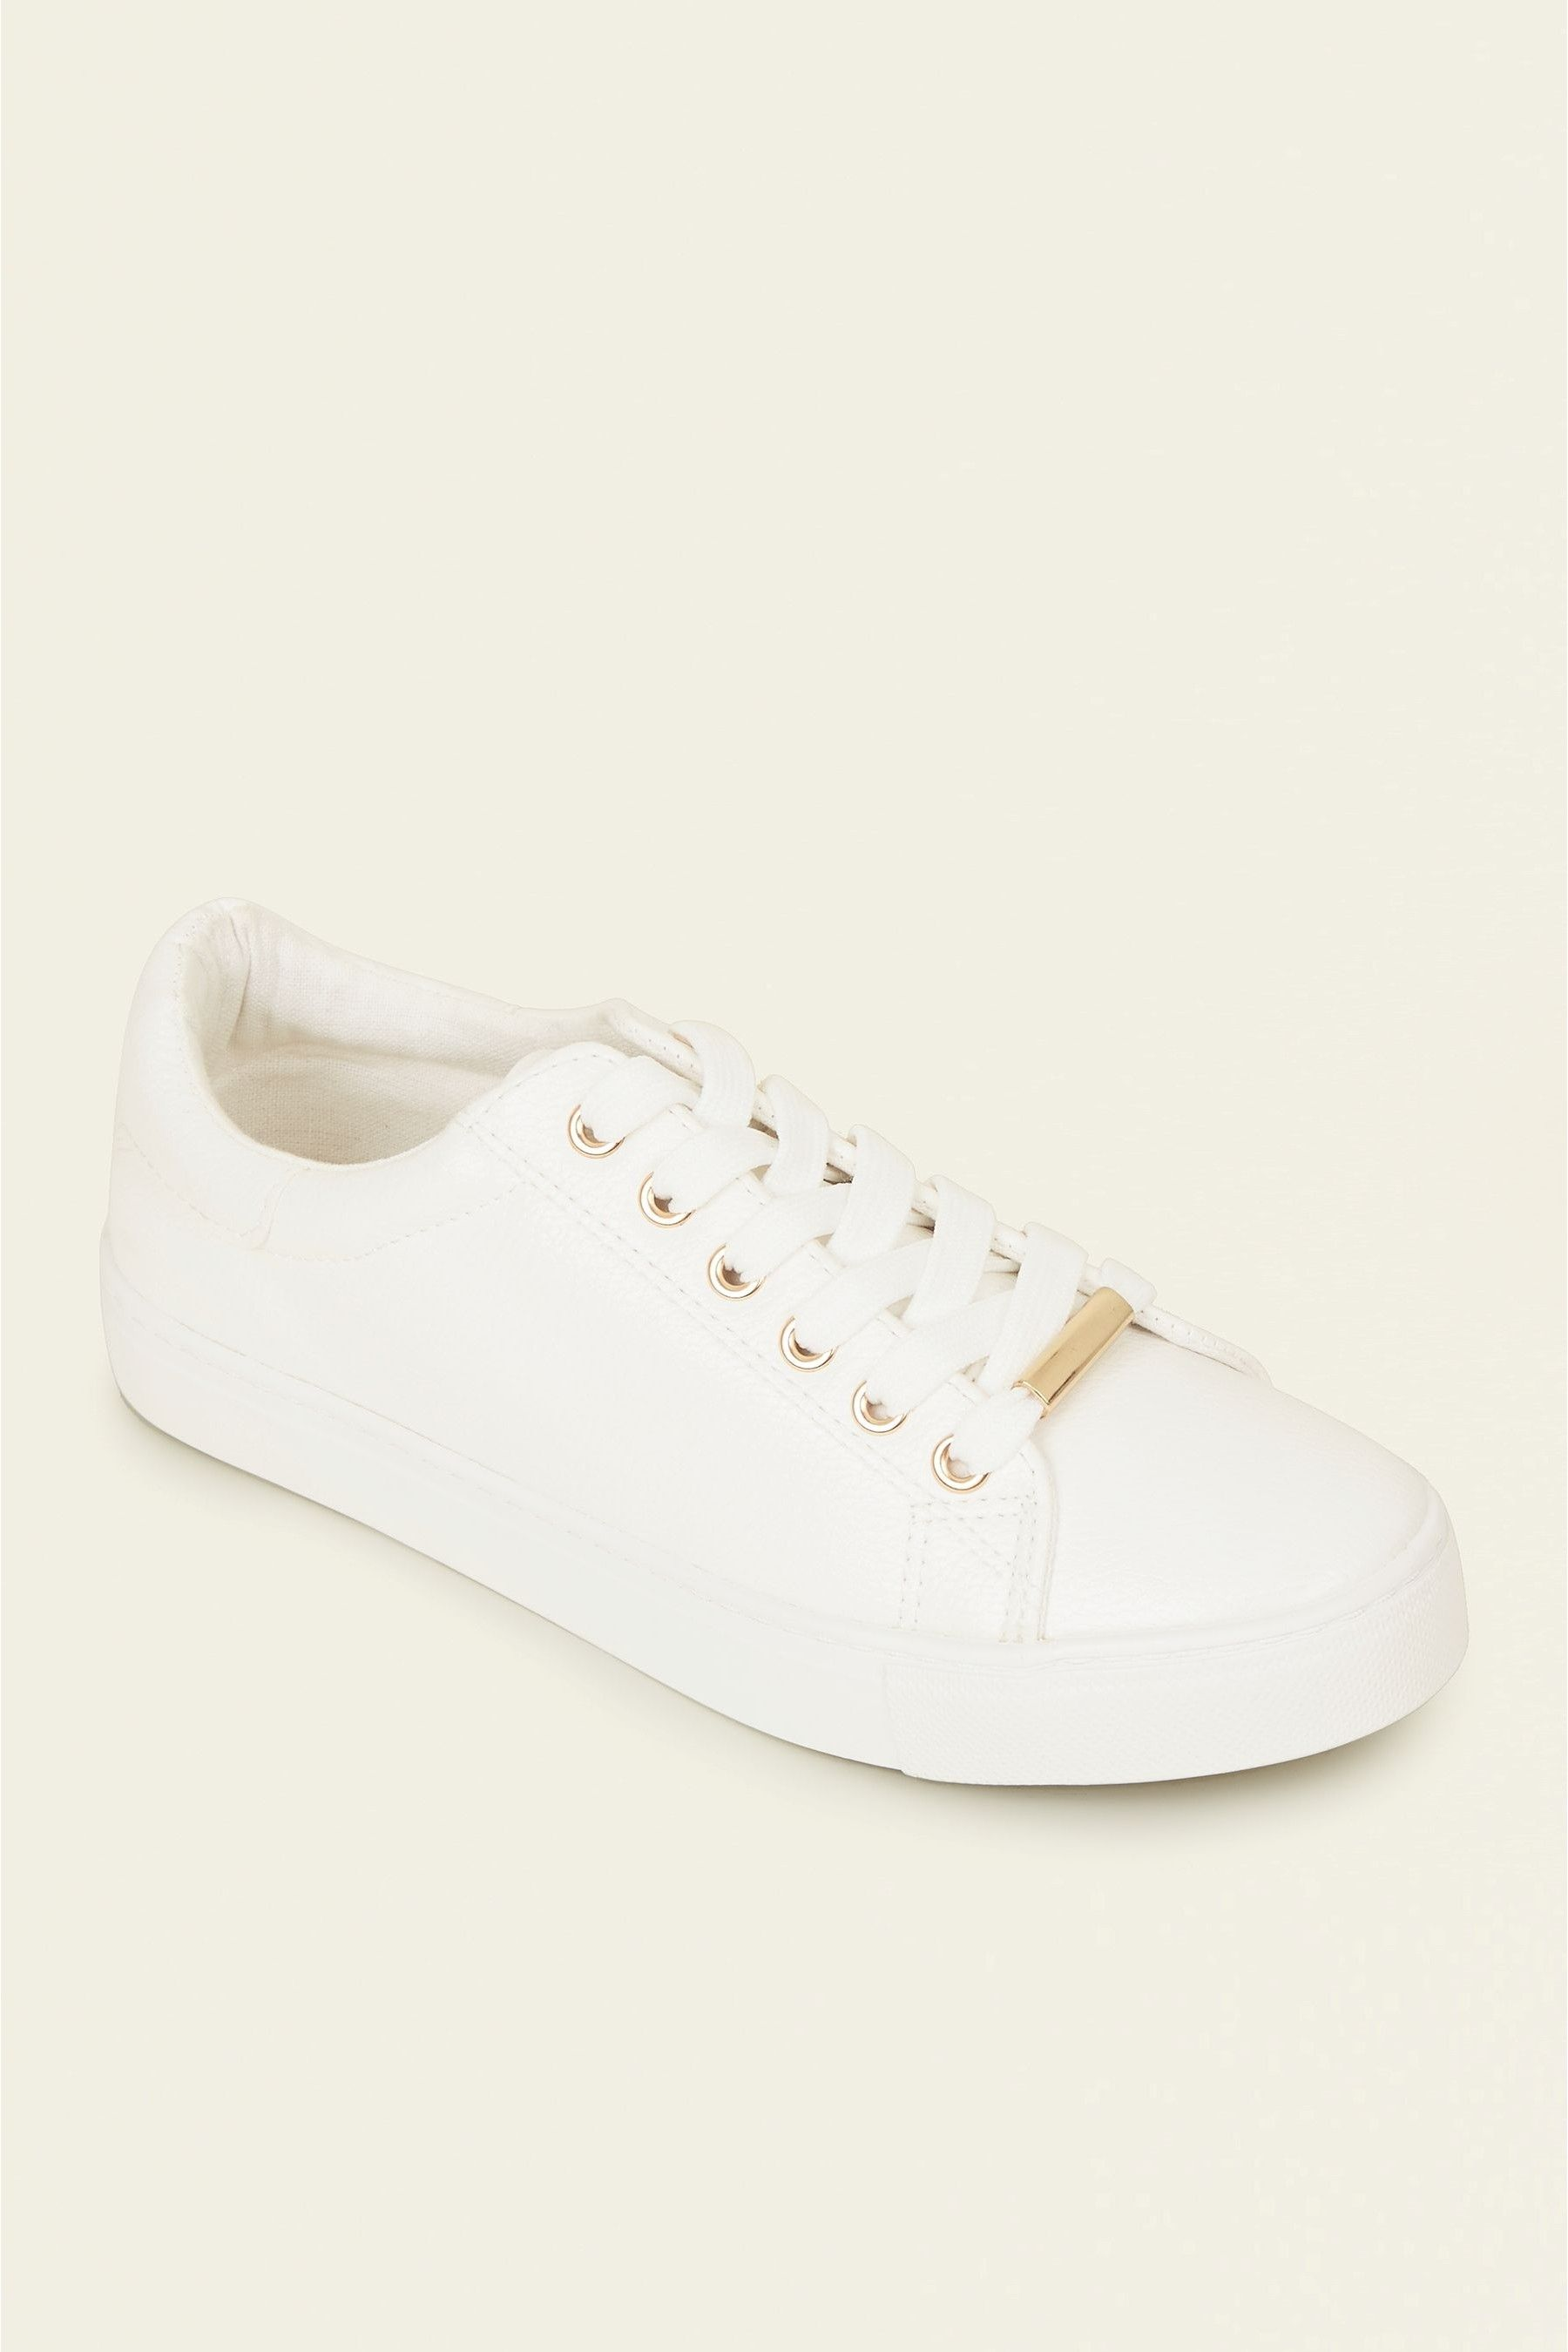 New Look PU Lace-Up Trainers   Lace up